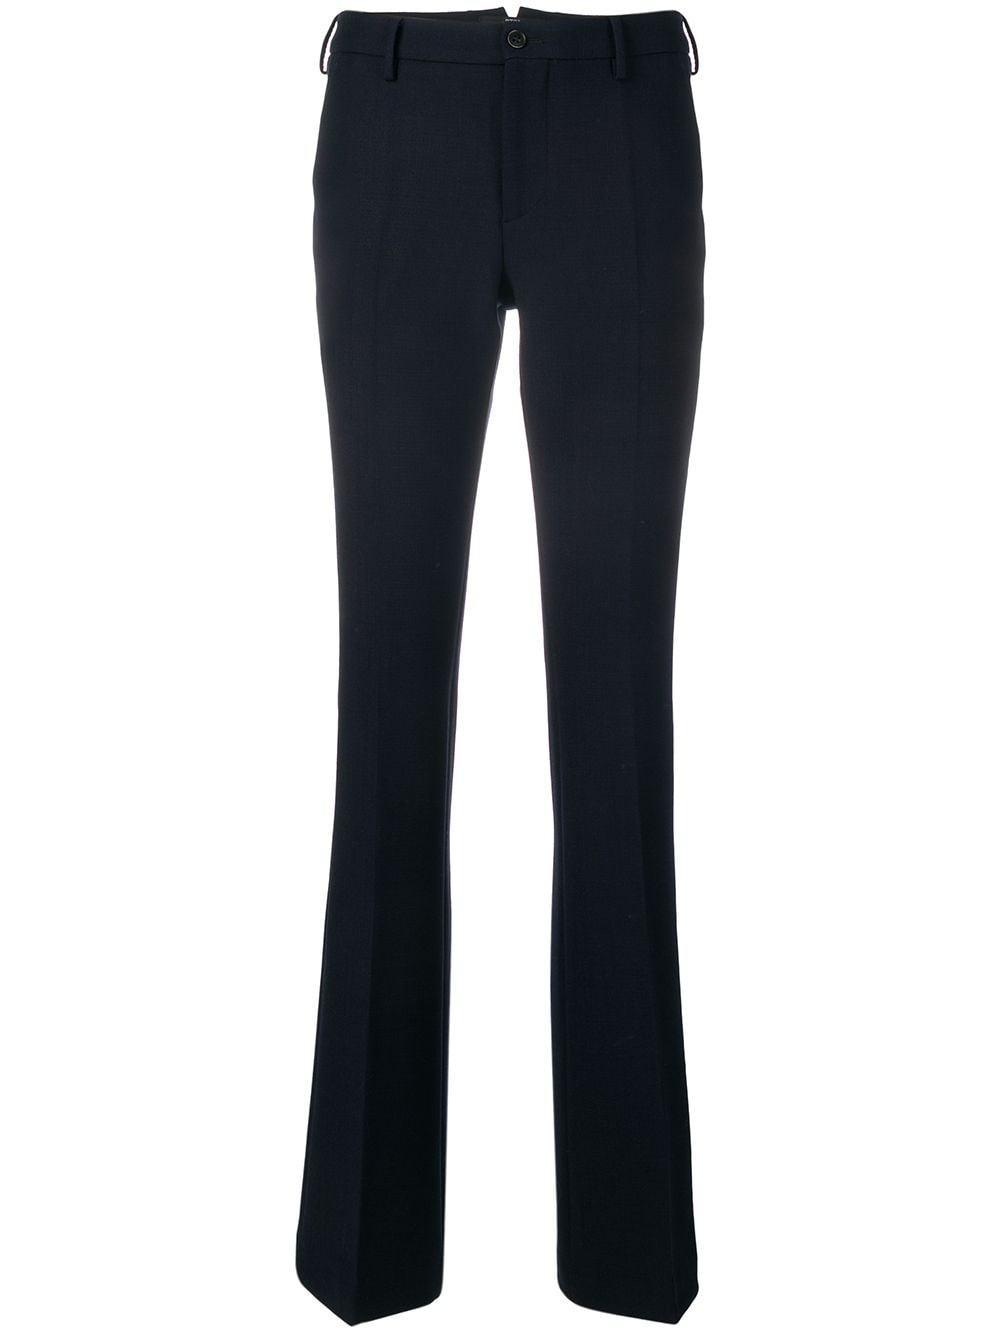 Pt01 tailored flared trousers - Blue von Pt01